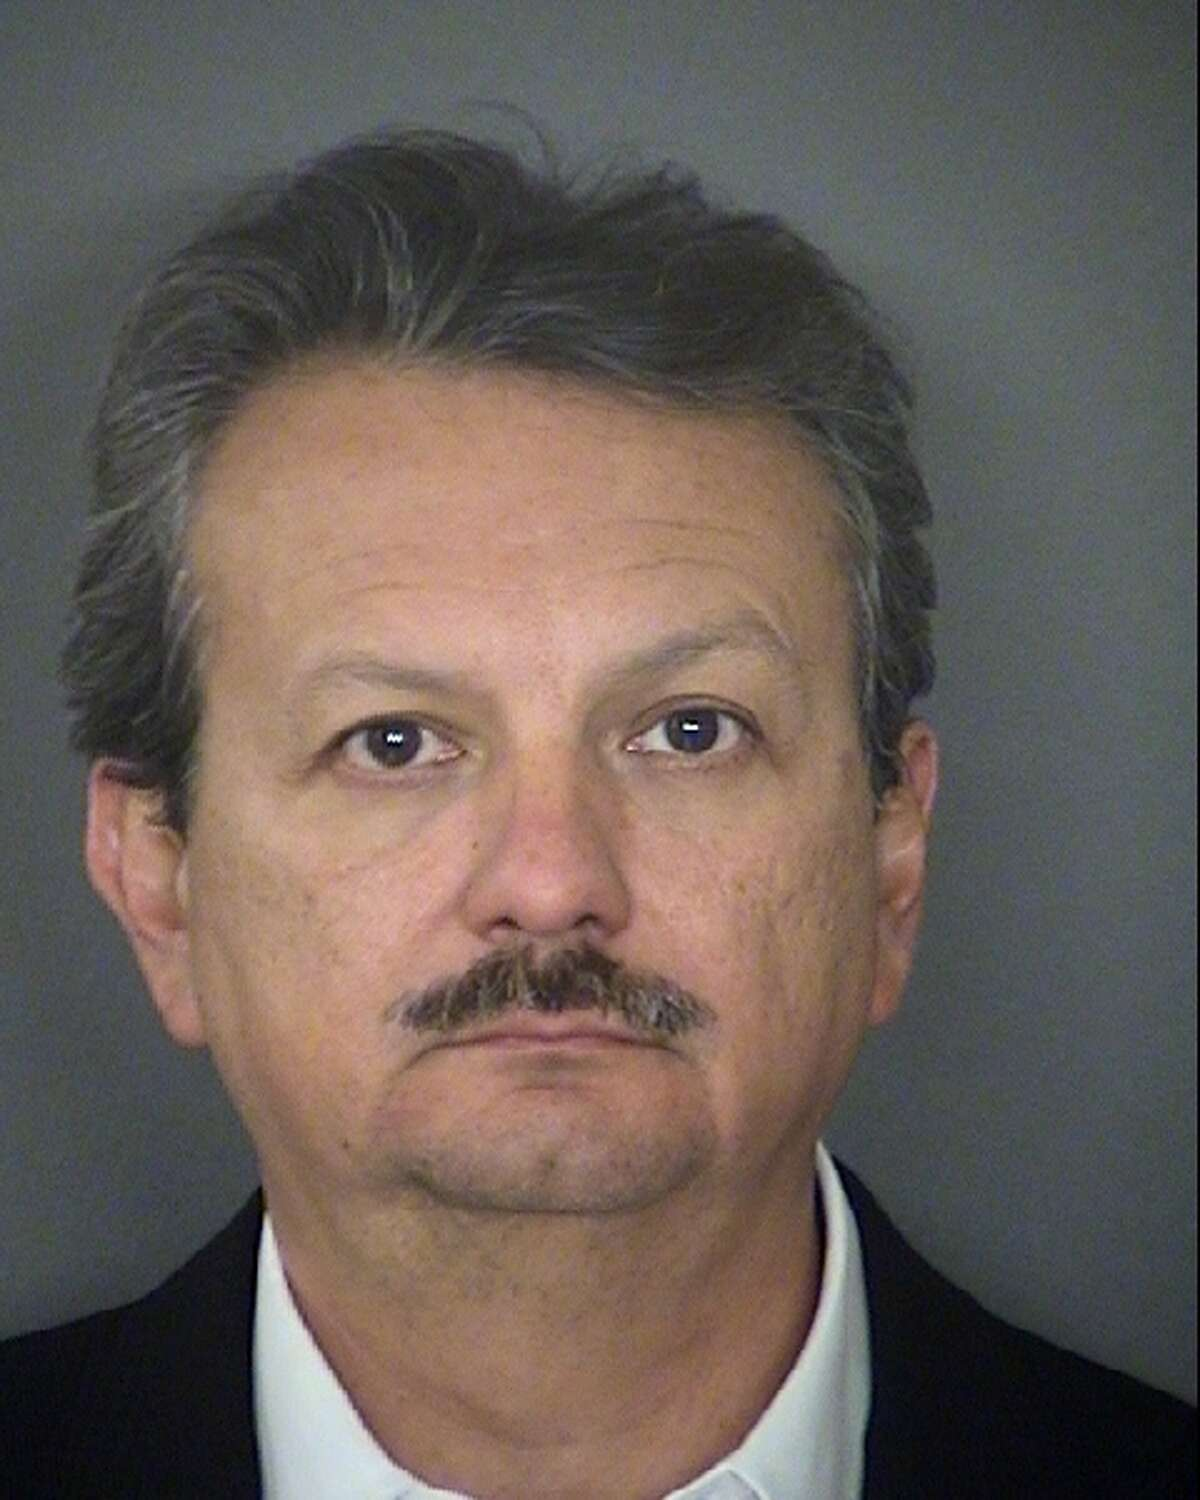 Ex-banker Armando Jesus Hernandez Leal, 53, is jailed in San Antonio on allegations that he stole $66 million he was supposed to invest.